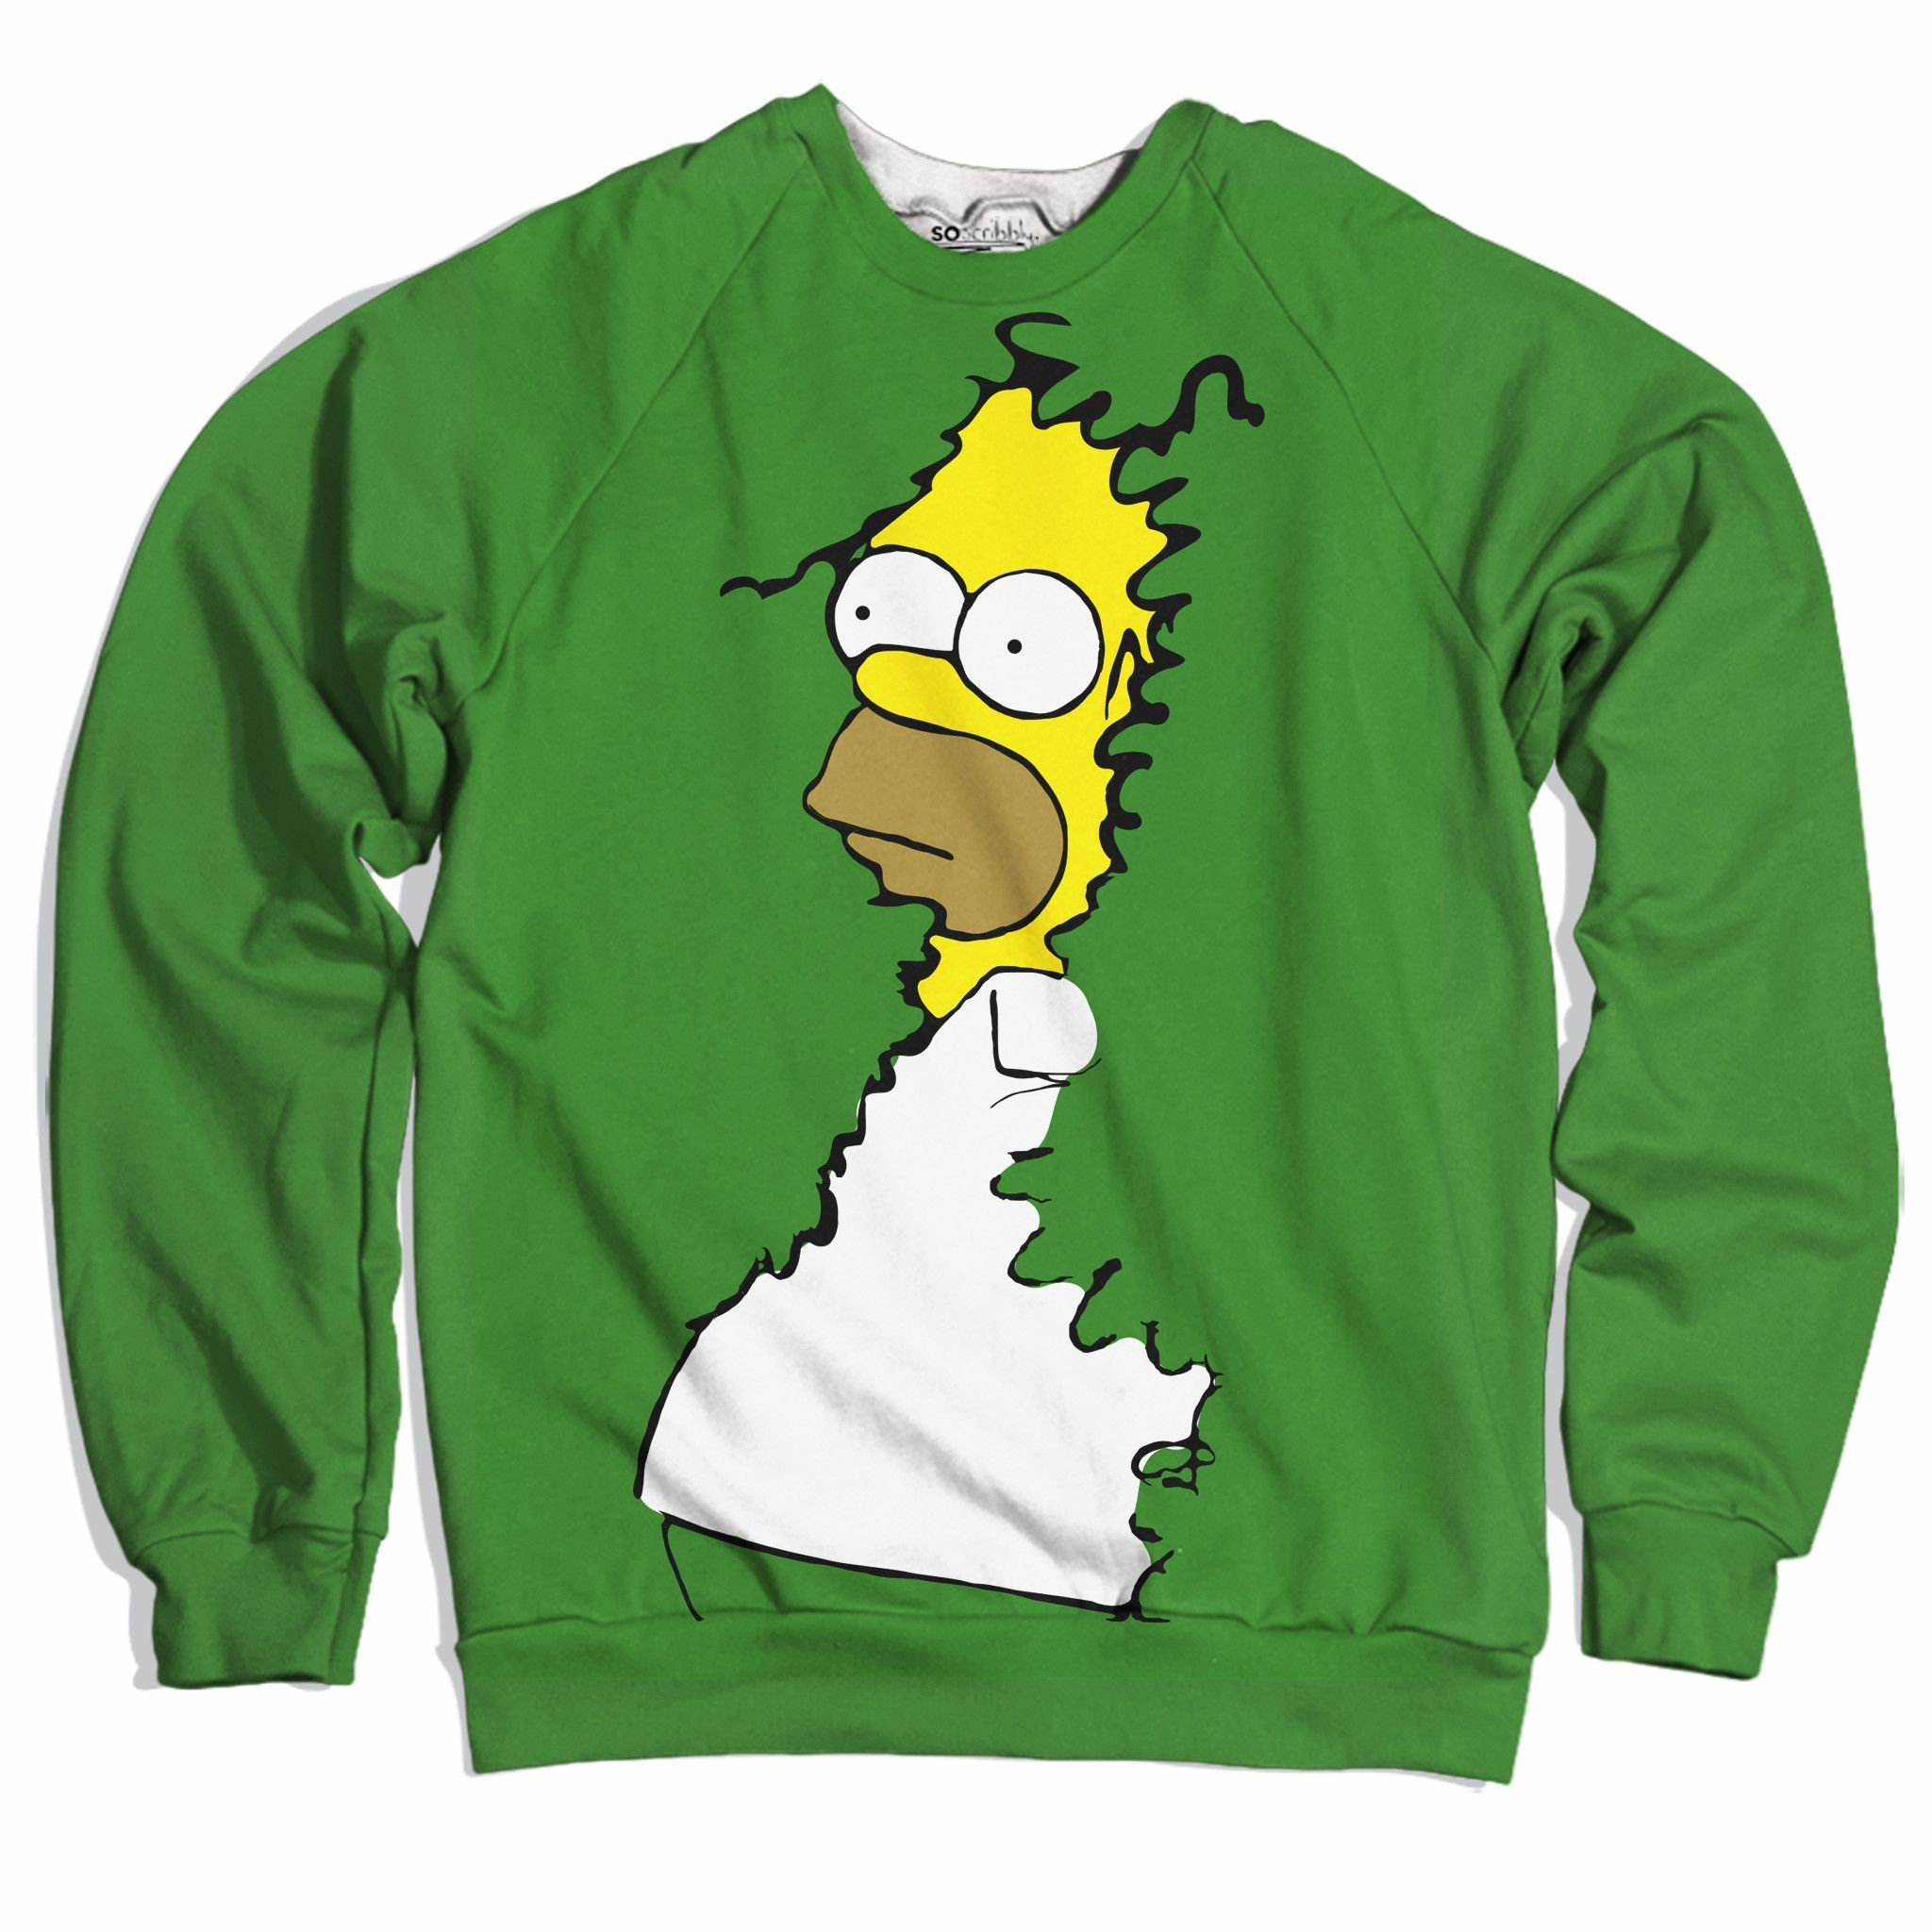 bf0f9ea72ca Awkward Bushes Sweater | Products | Sweaters, Simpsons shirt, Homer ...